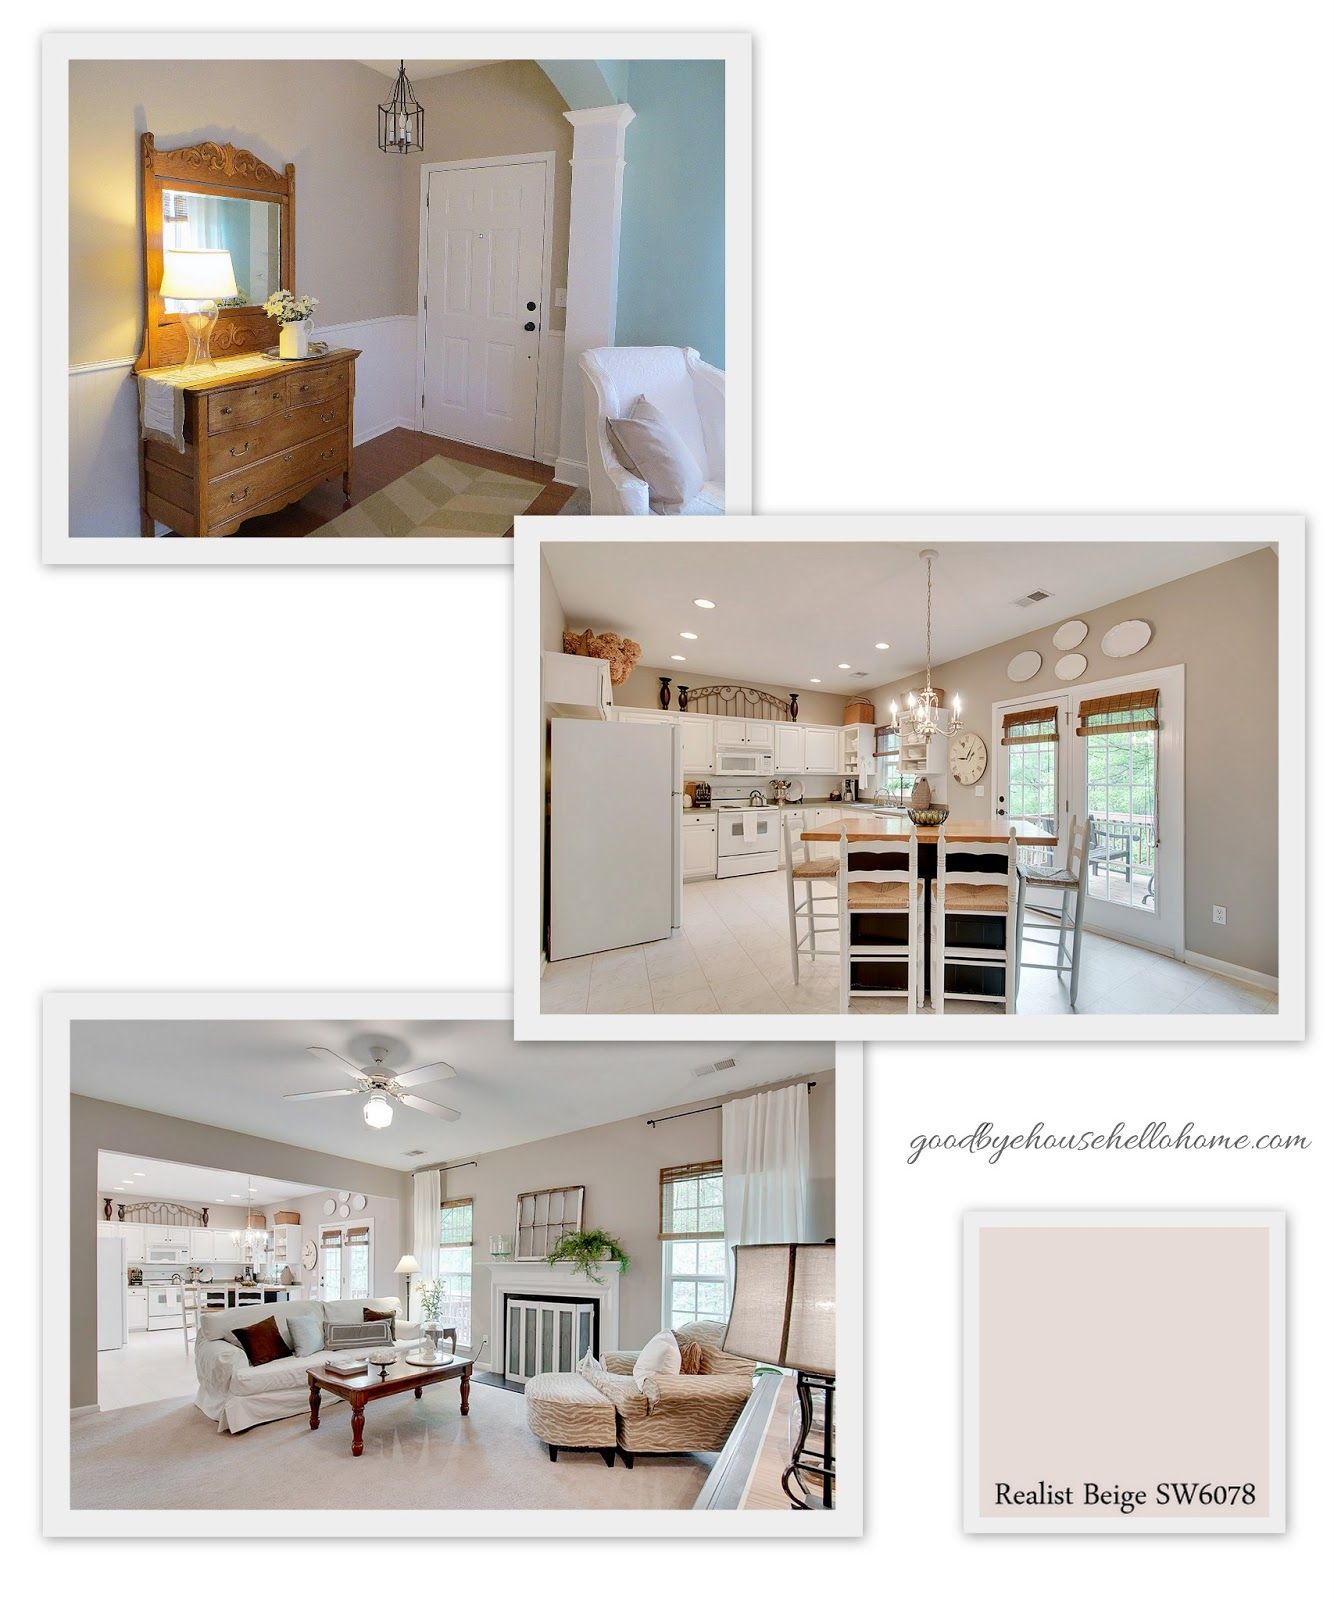 Living Room And Kitchen Stage By Synergy Staging: Sherwin Williams Realist Beige